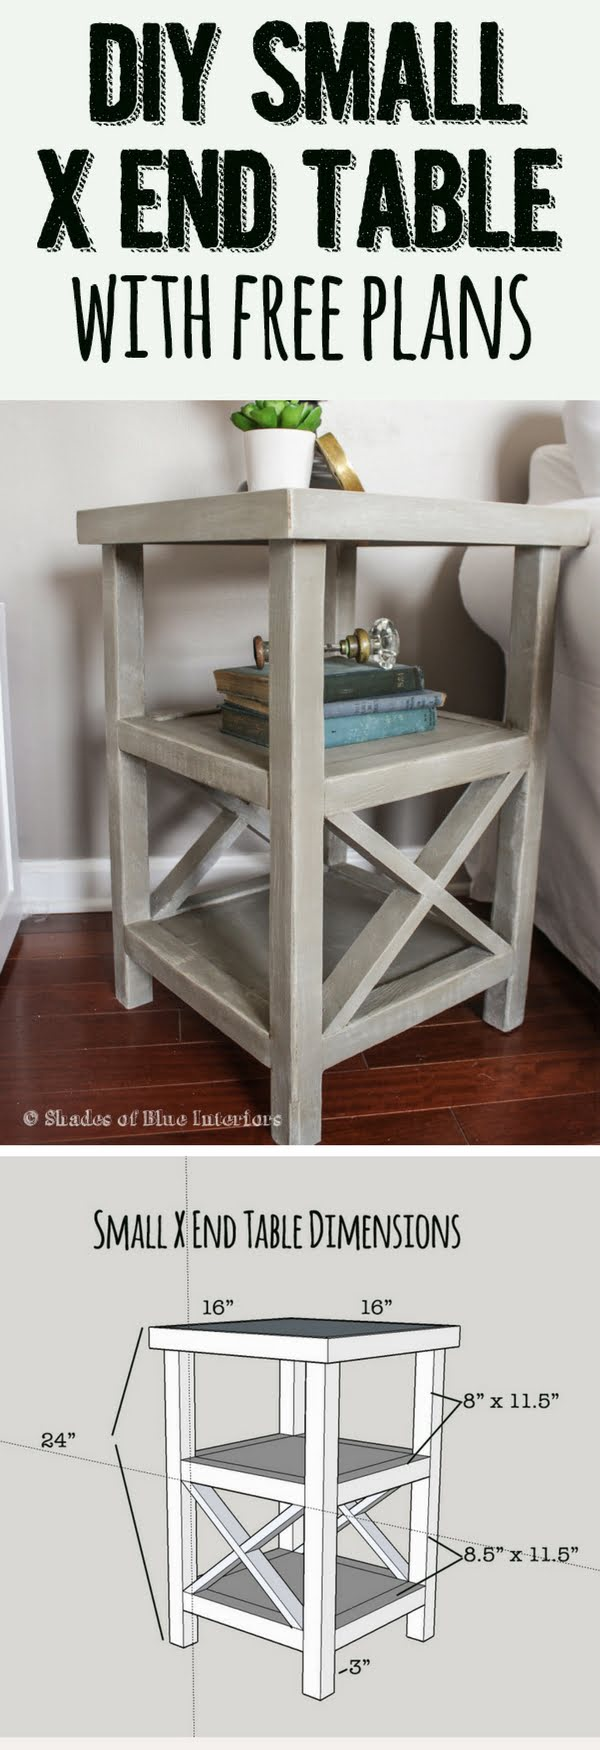 18 Easy DIY Sofa Side Tables You Can Build on a Budget - Check out the tutorial how make a small DIY sofa X end table